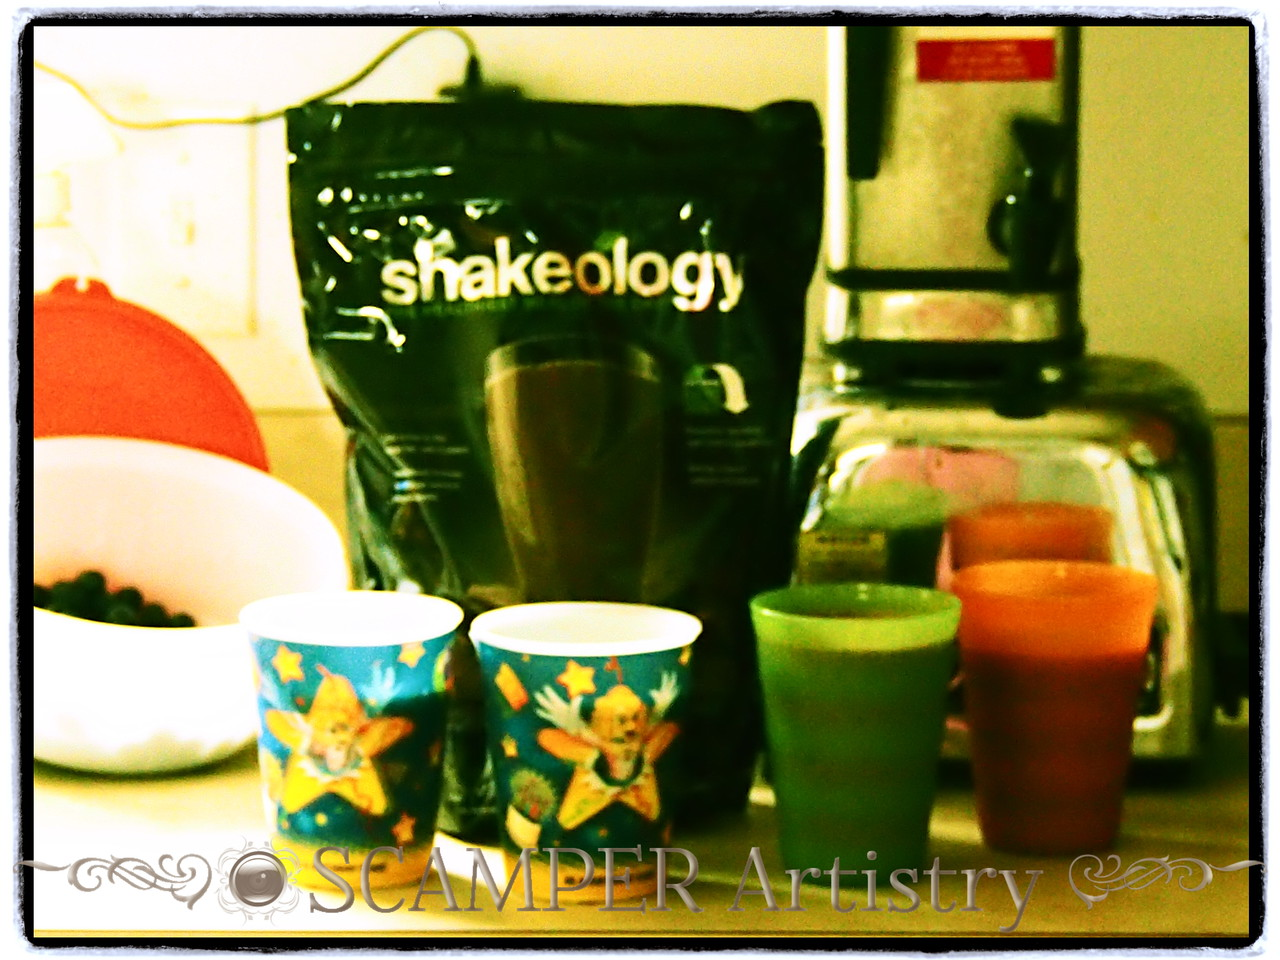 Fresh blueberries in our Chocolate Shakeology today.  The kids loved it!